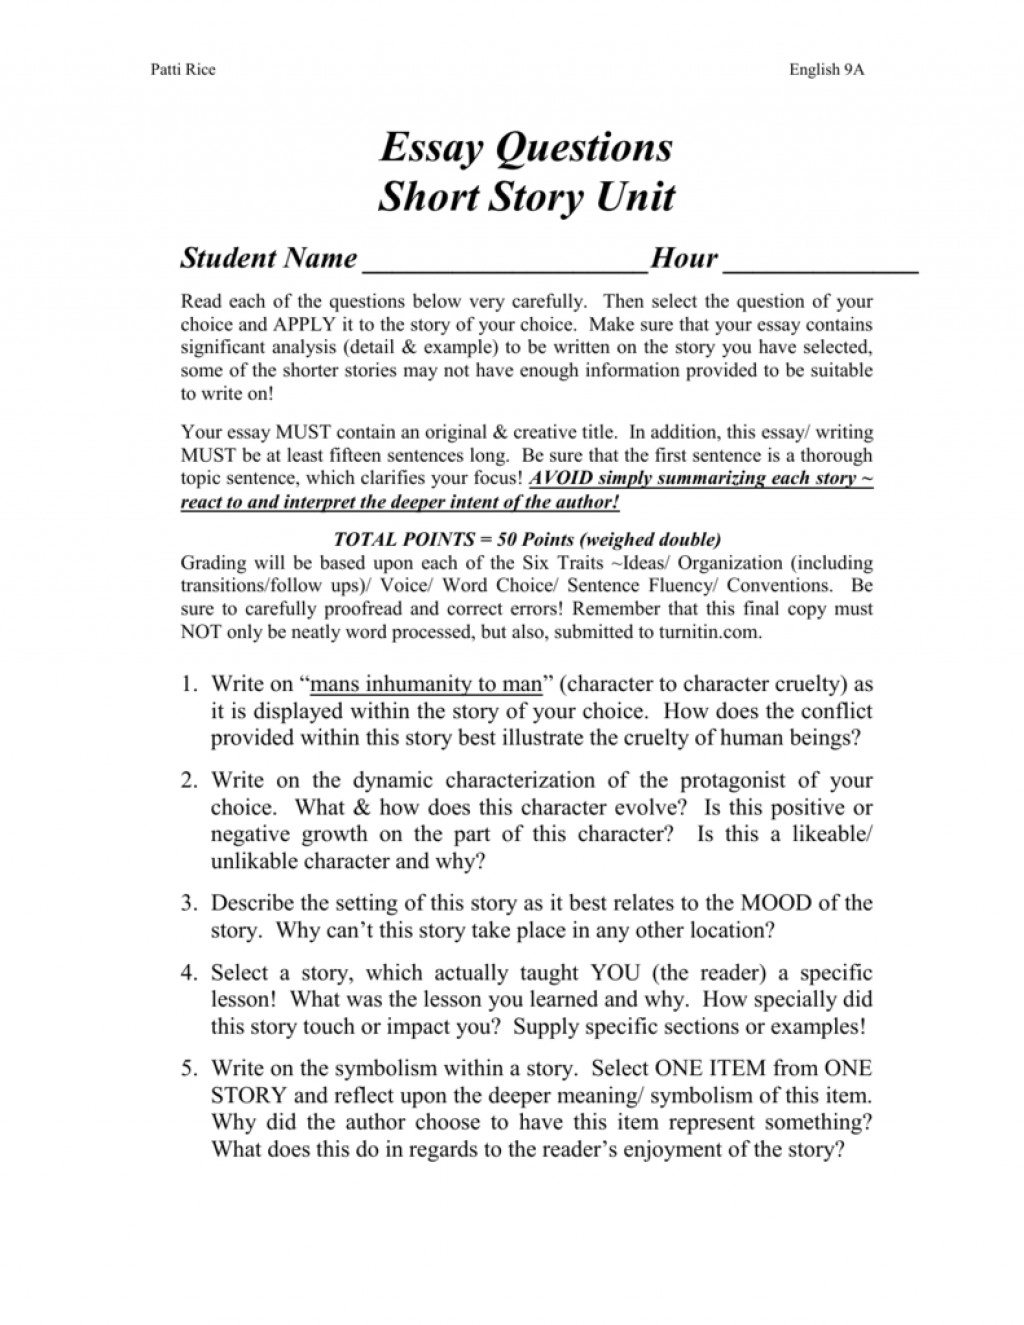 006 Short Story Essay Examples Example 008001643 1 Unforgettable Analysis For High School Large